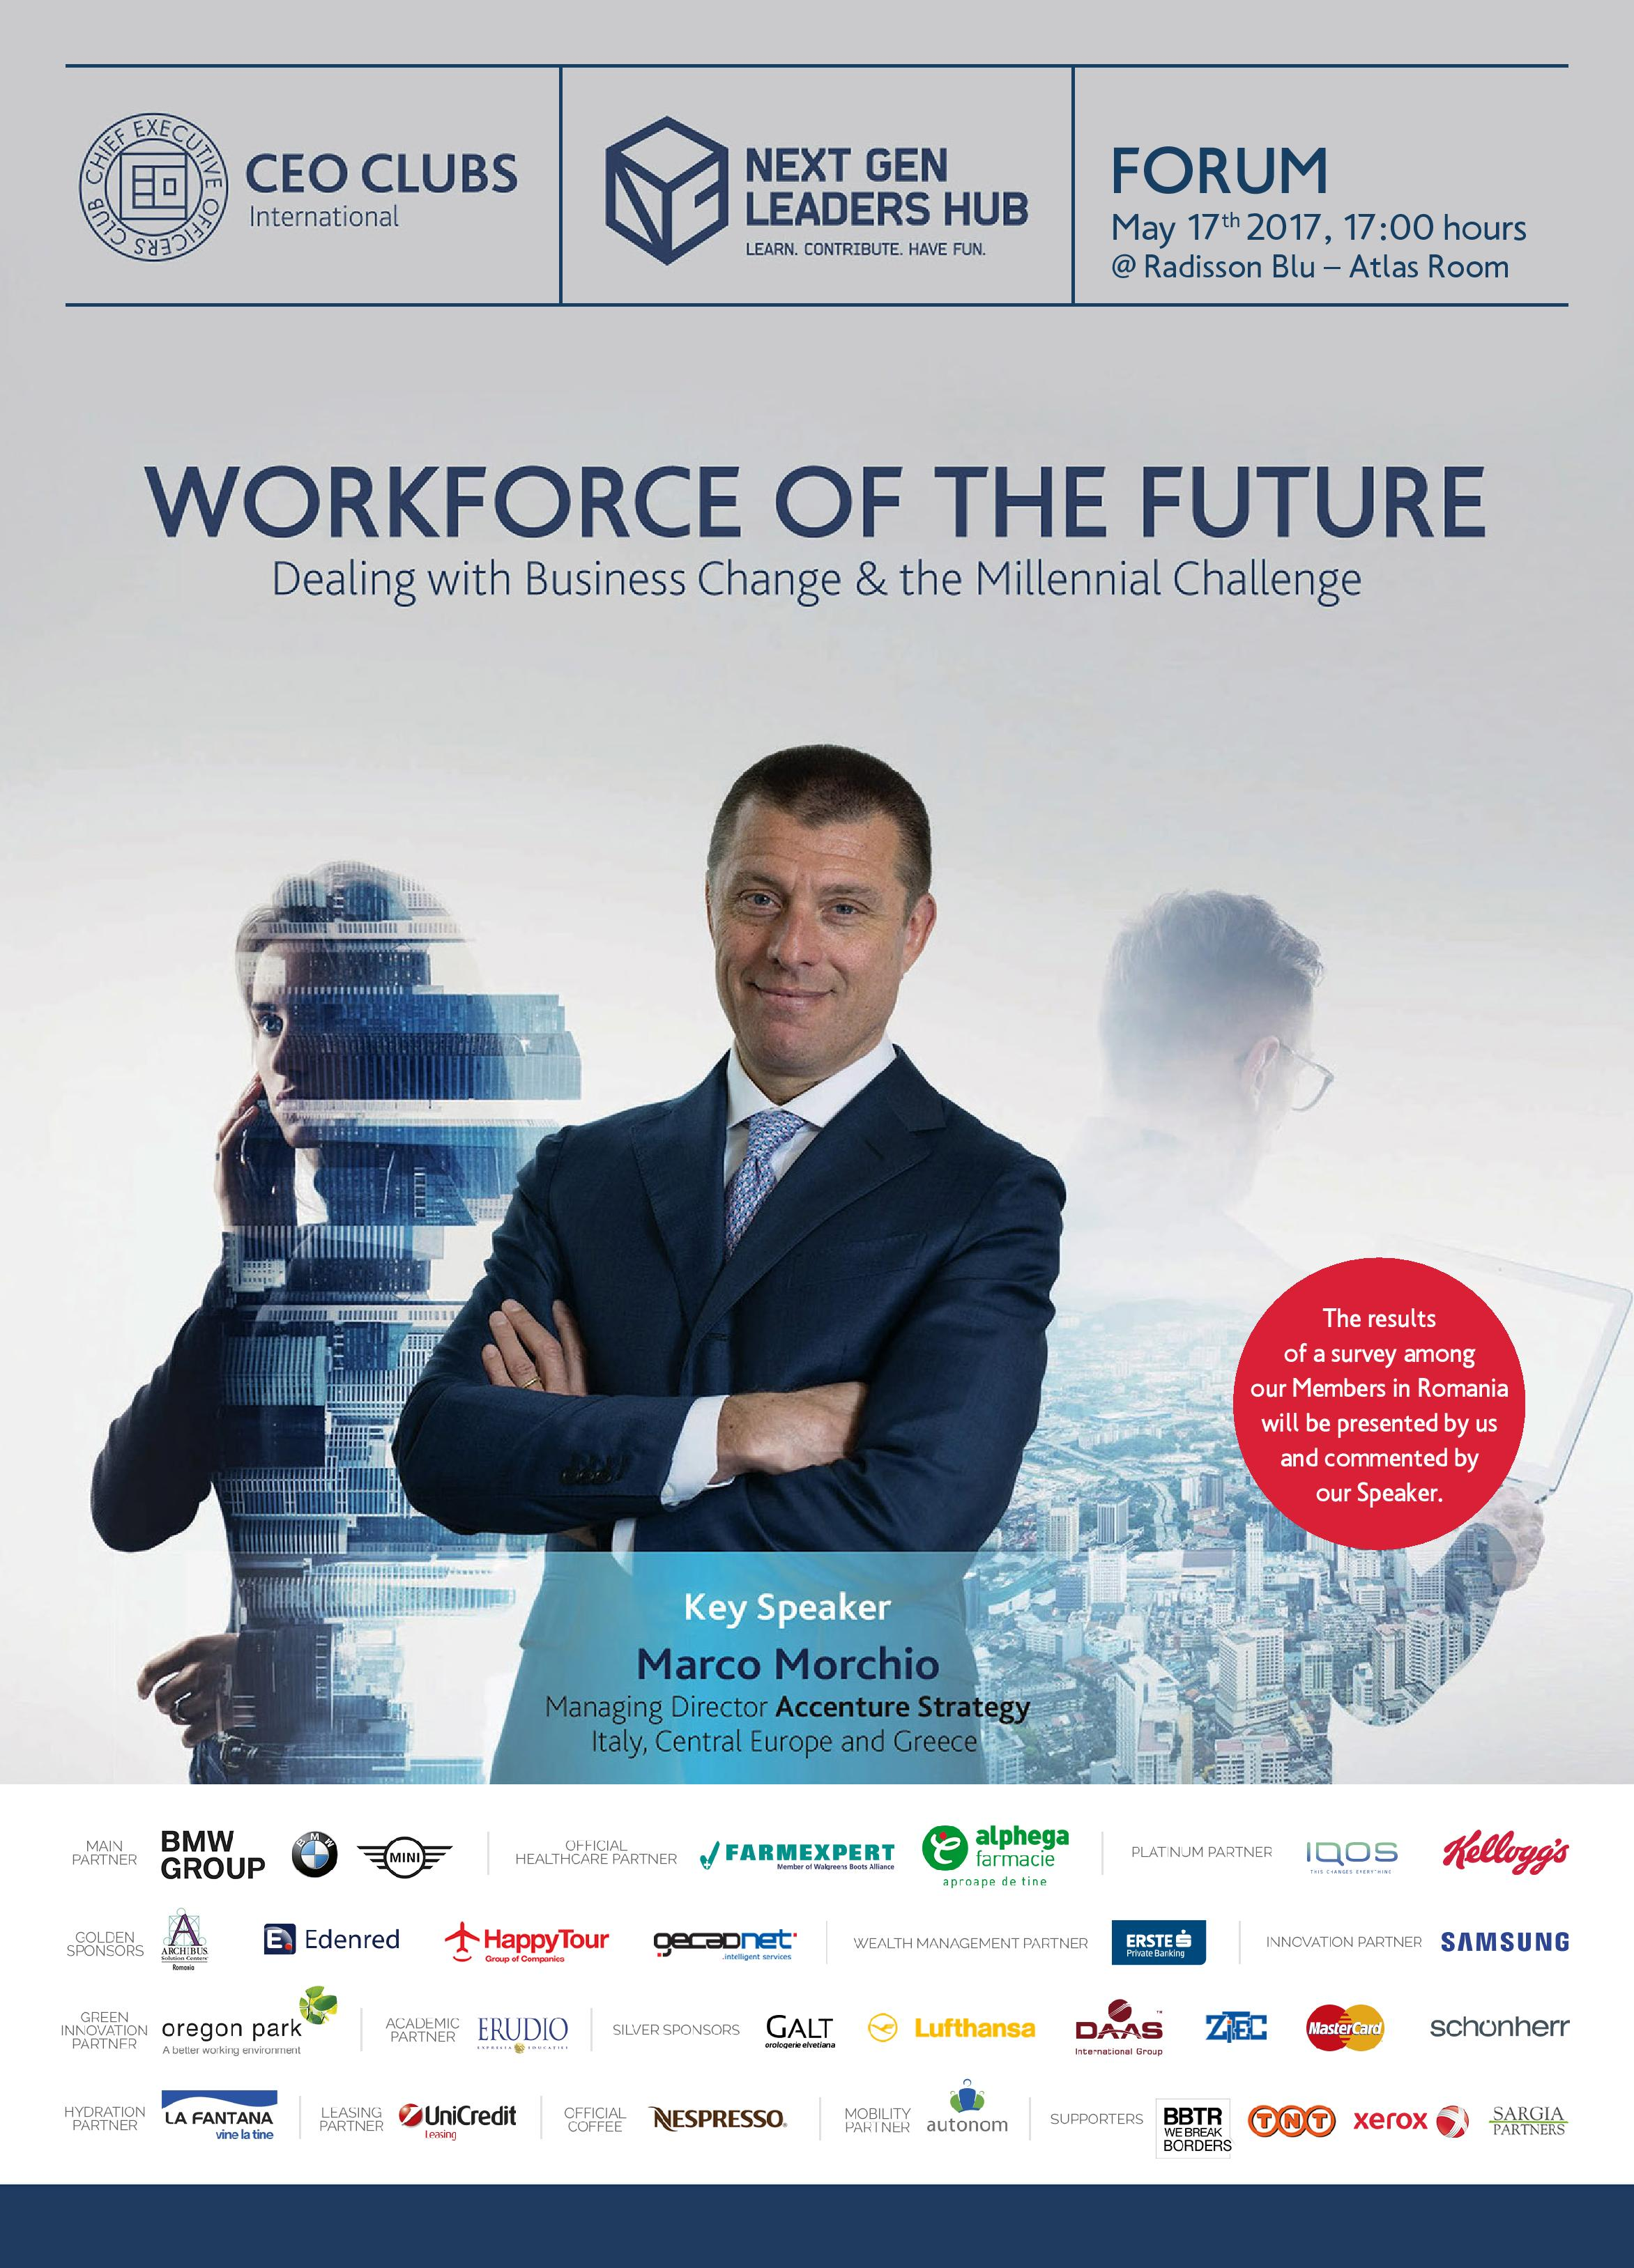 The 11th Forum: Workforce of the Future